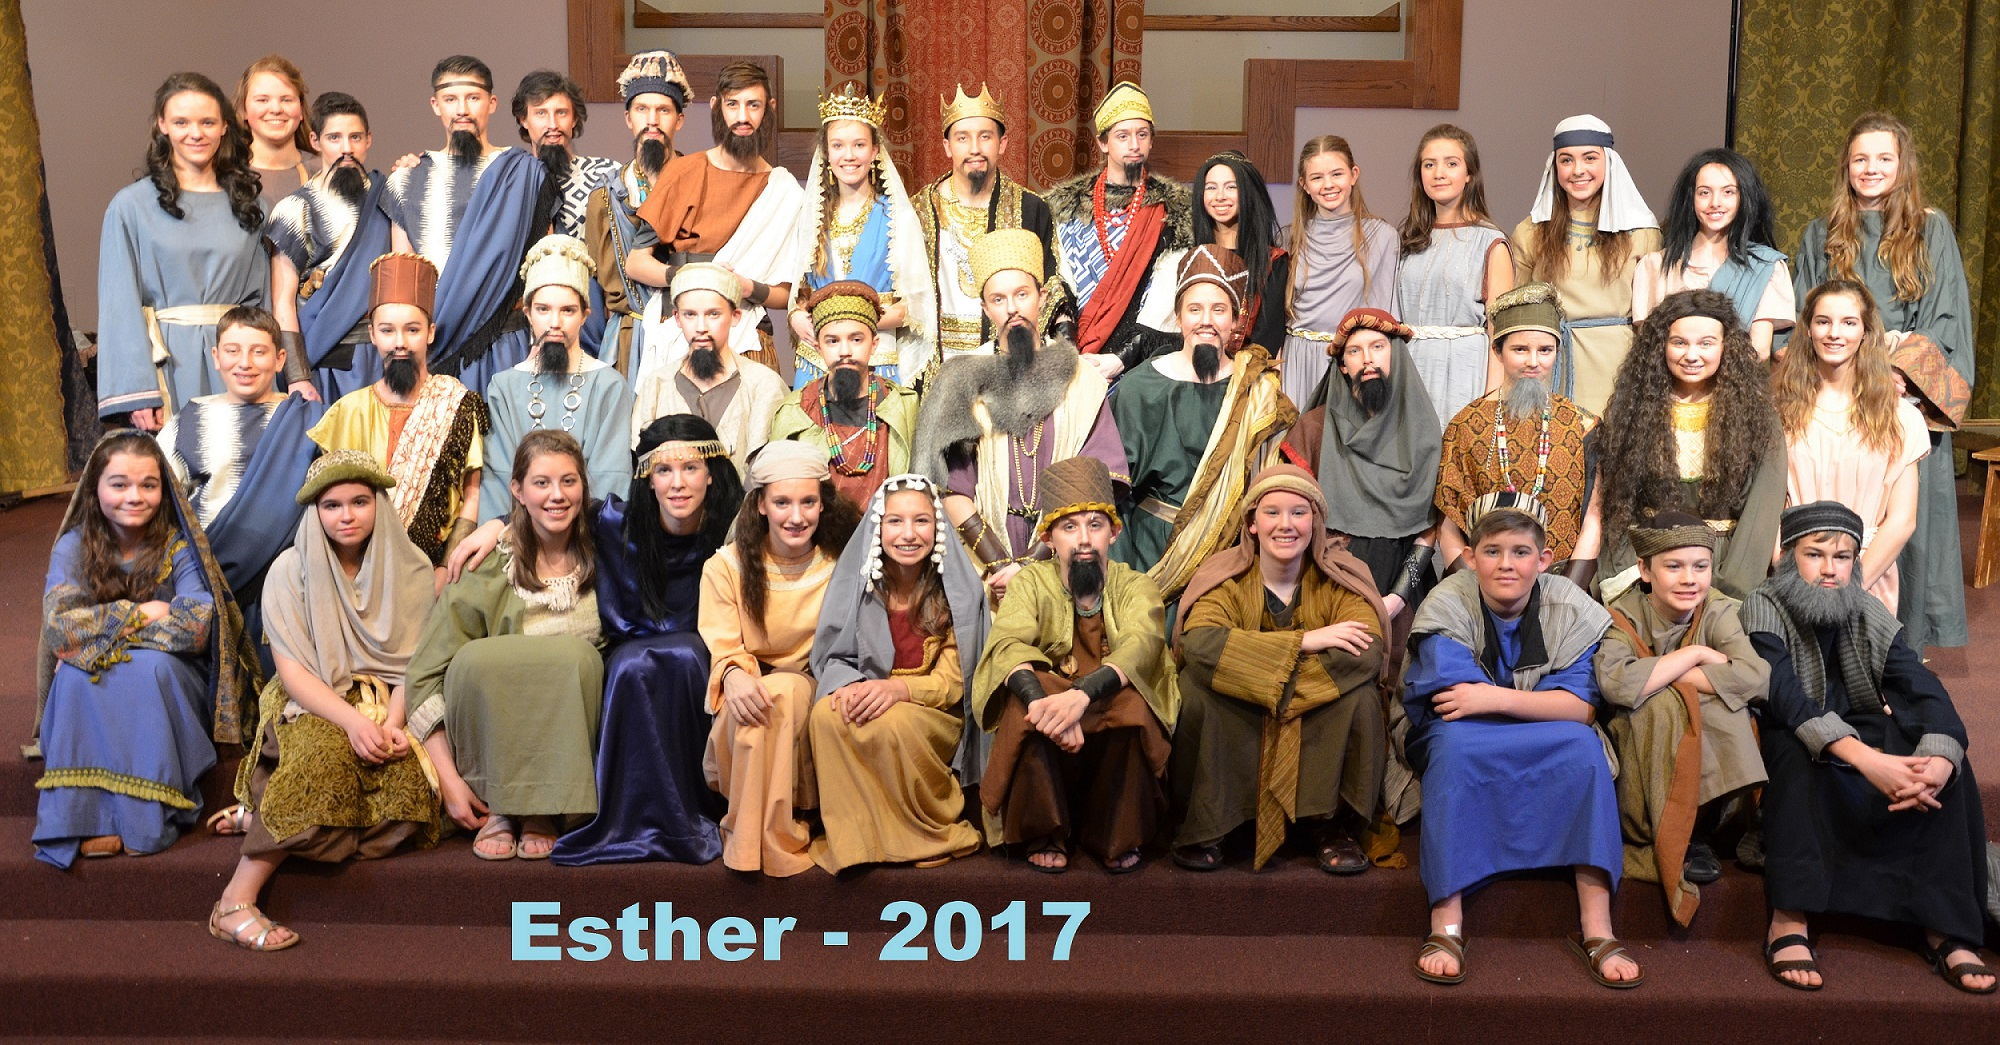 2017 Esther pic for website